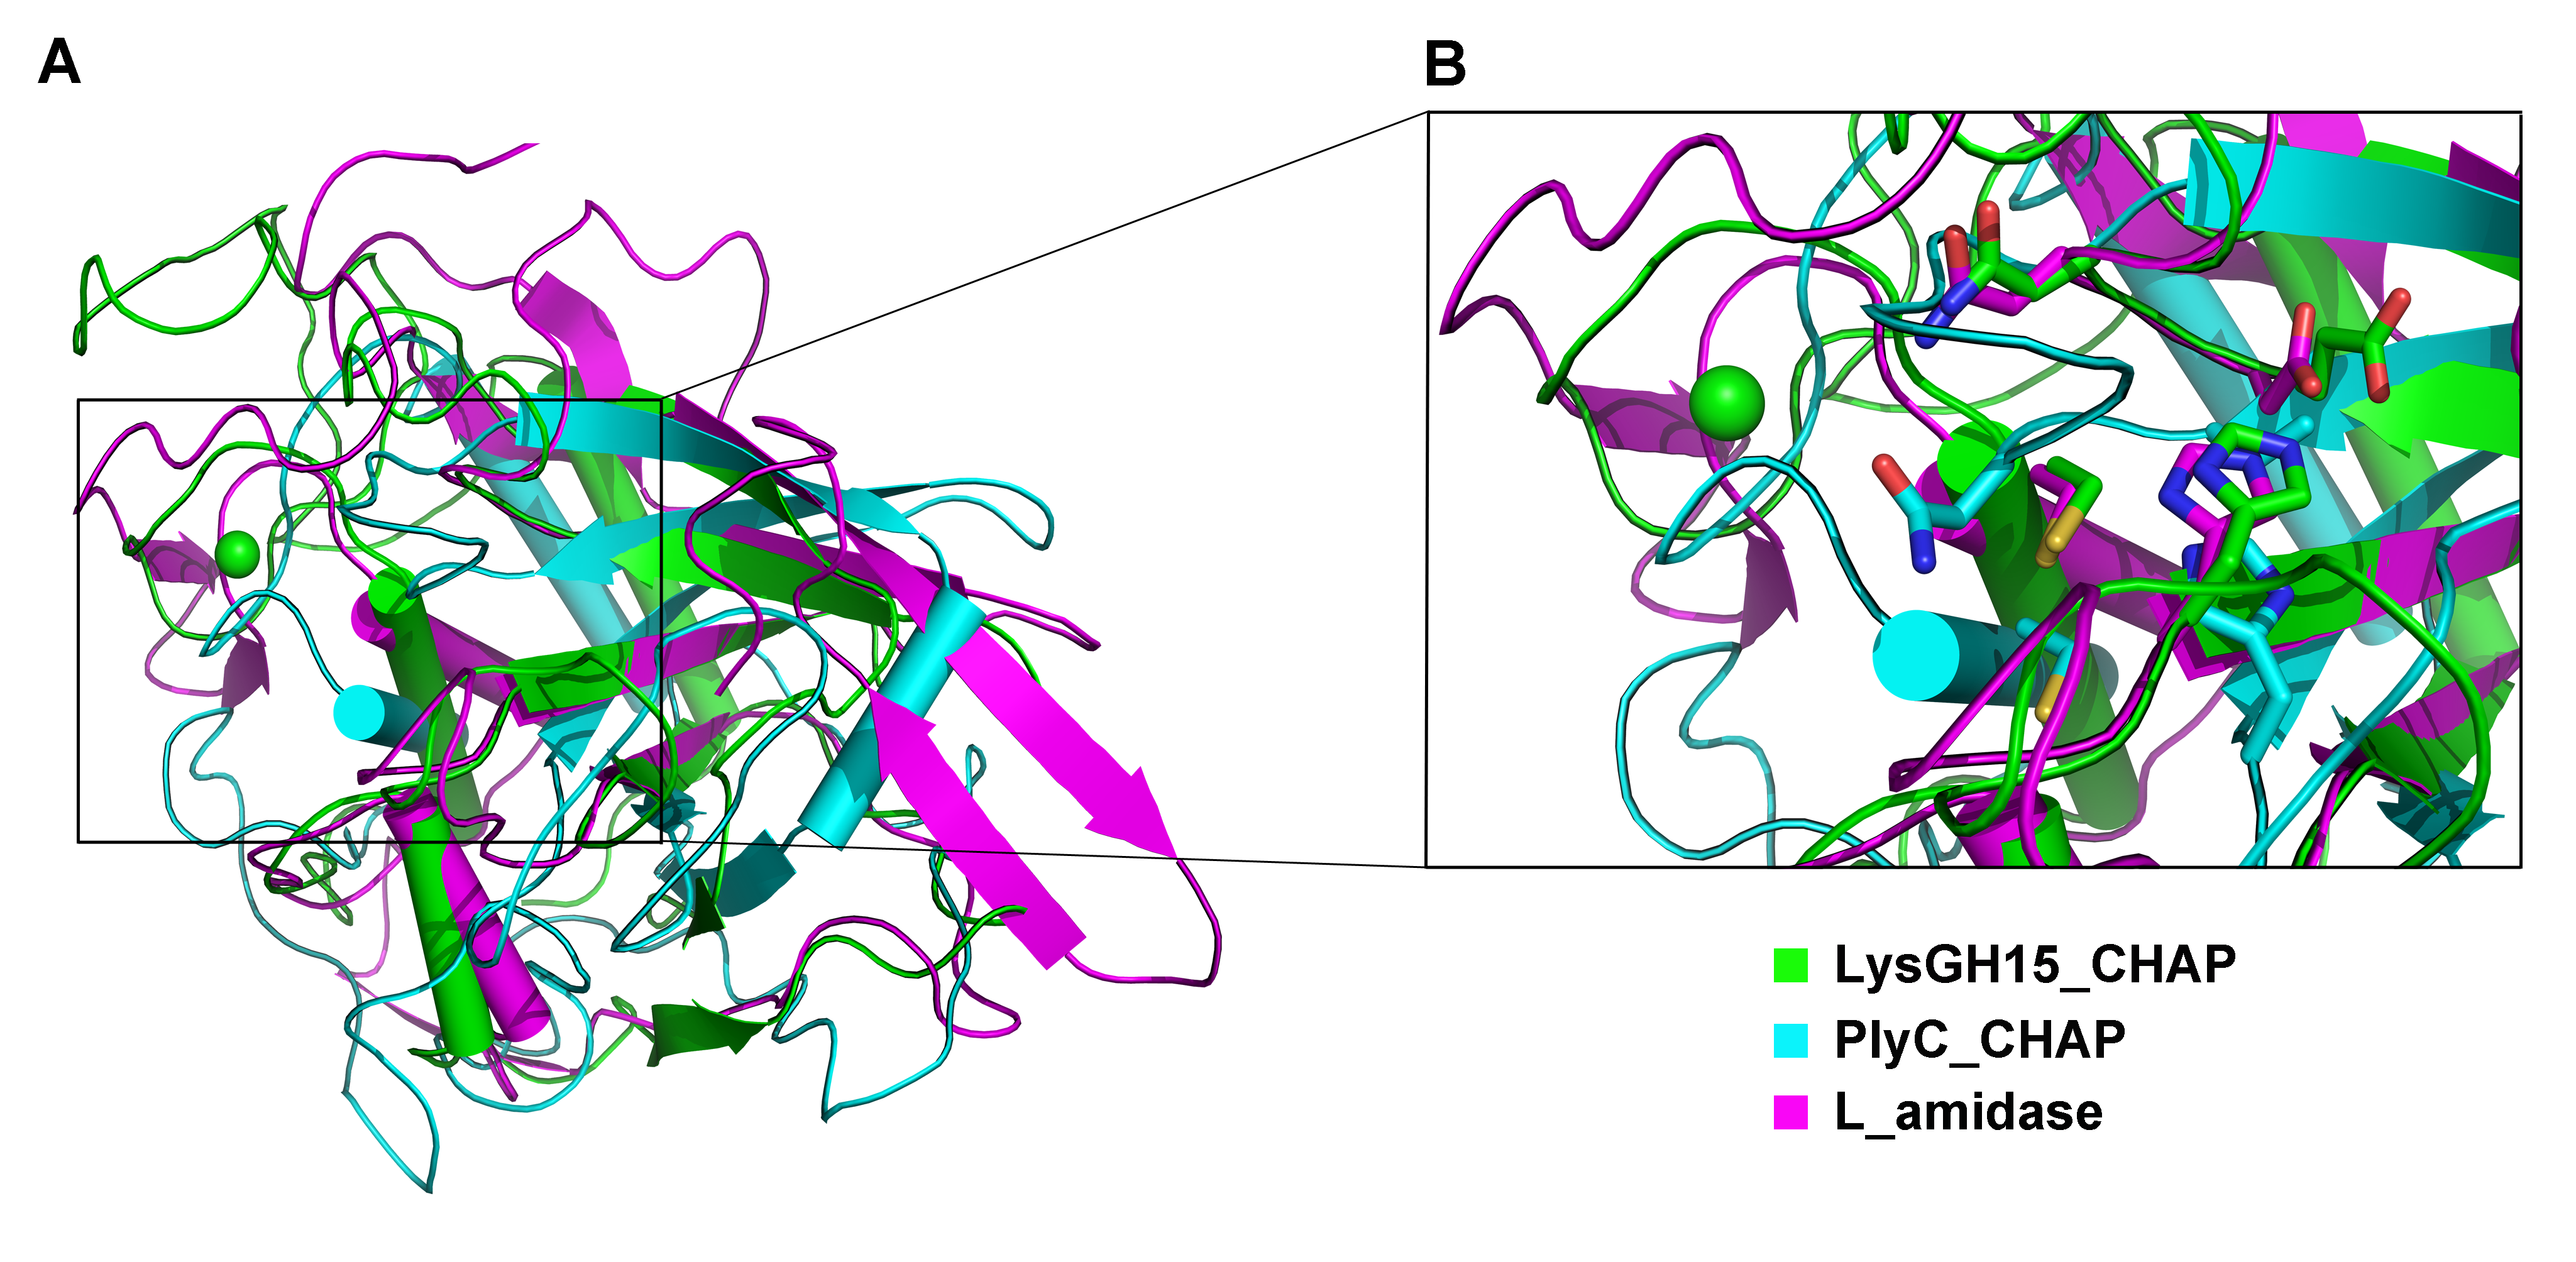 Structural comparison of the LysGH15 CHAP domain with homologous proteins.